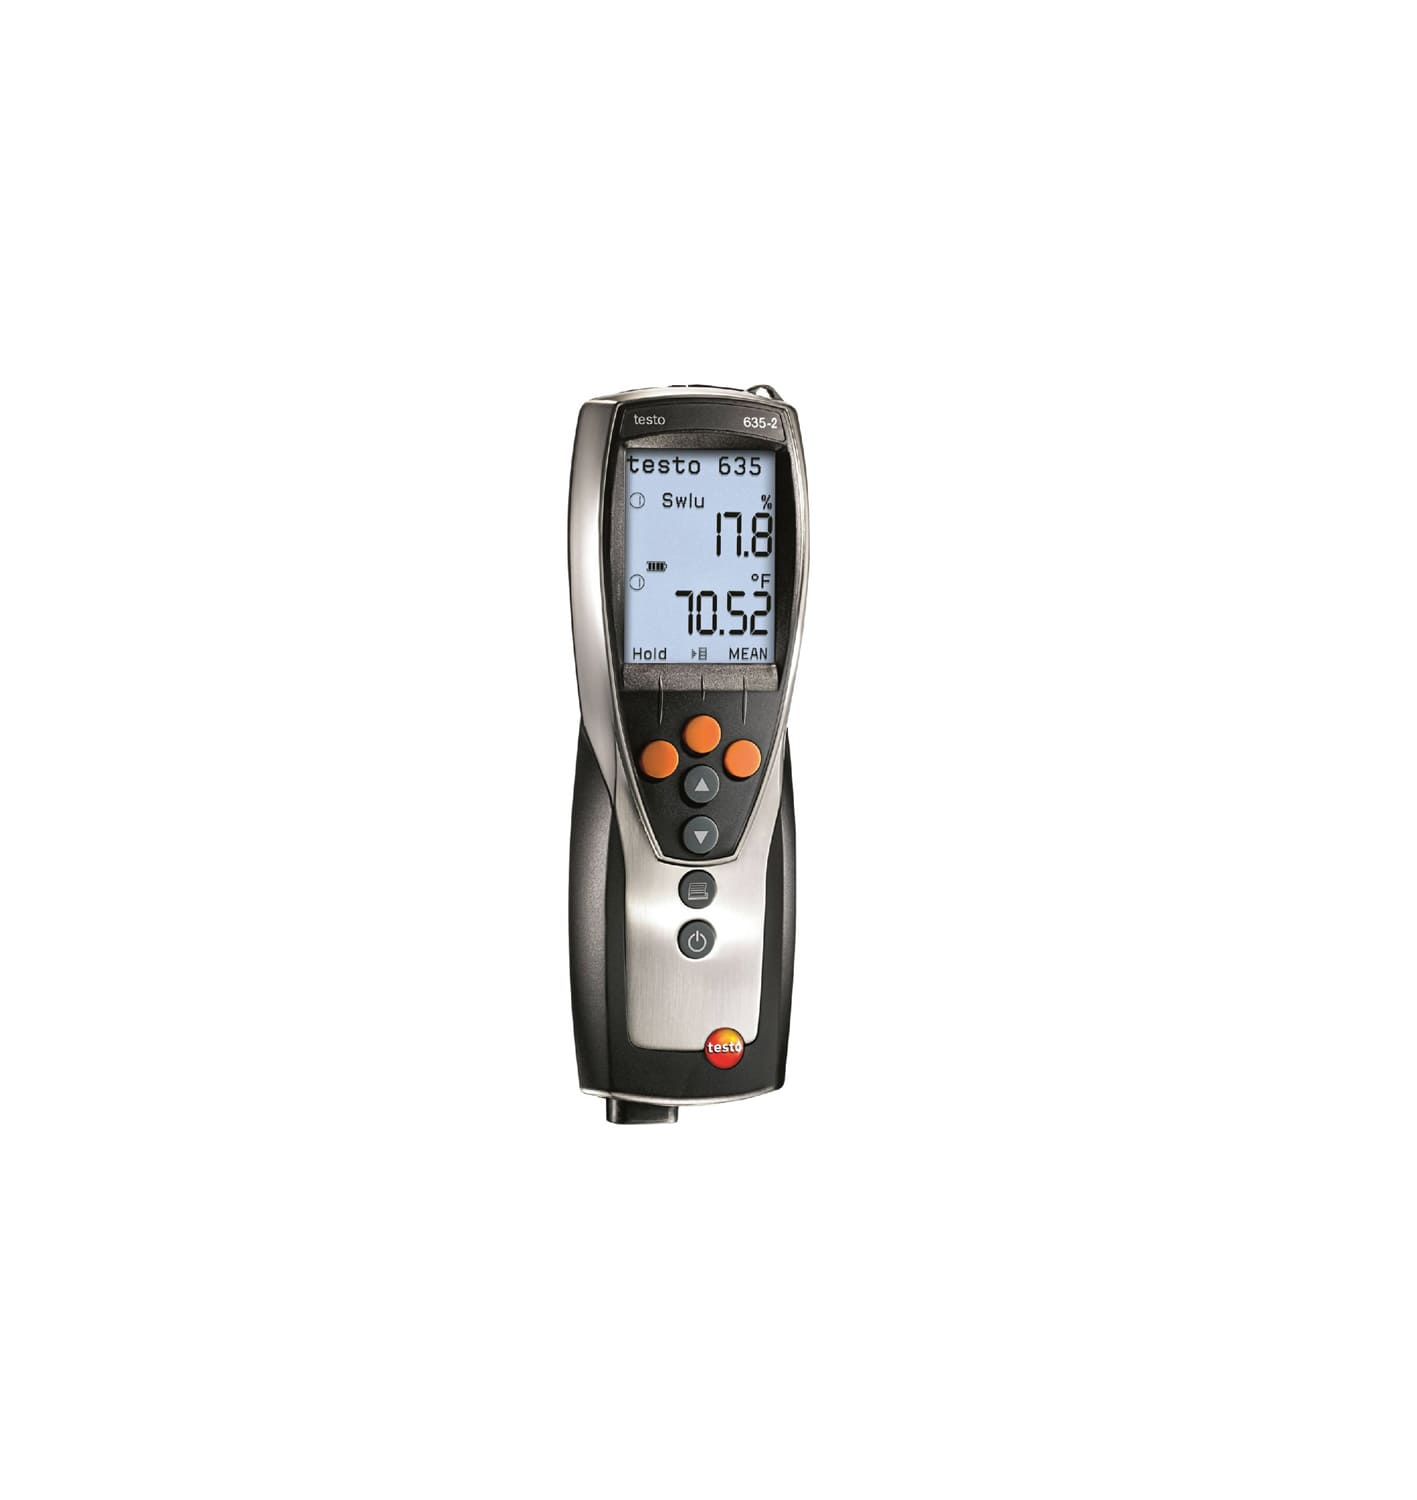 testo 635-2 U-value promo set - thermohygrometer set